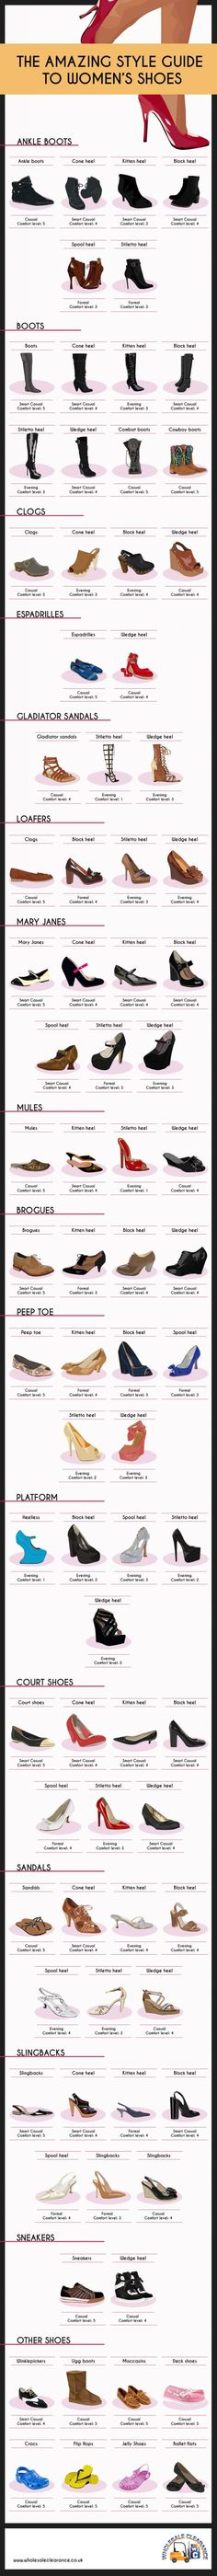 The Amazing Style Guide to Women's Shoes Infographic by Lu